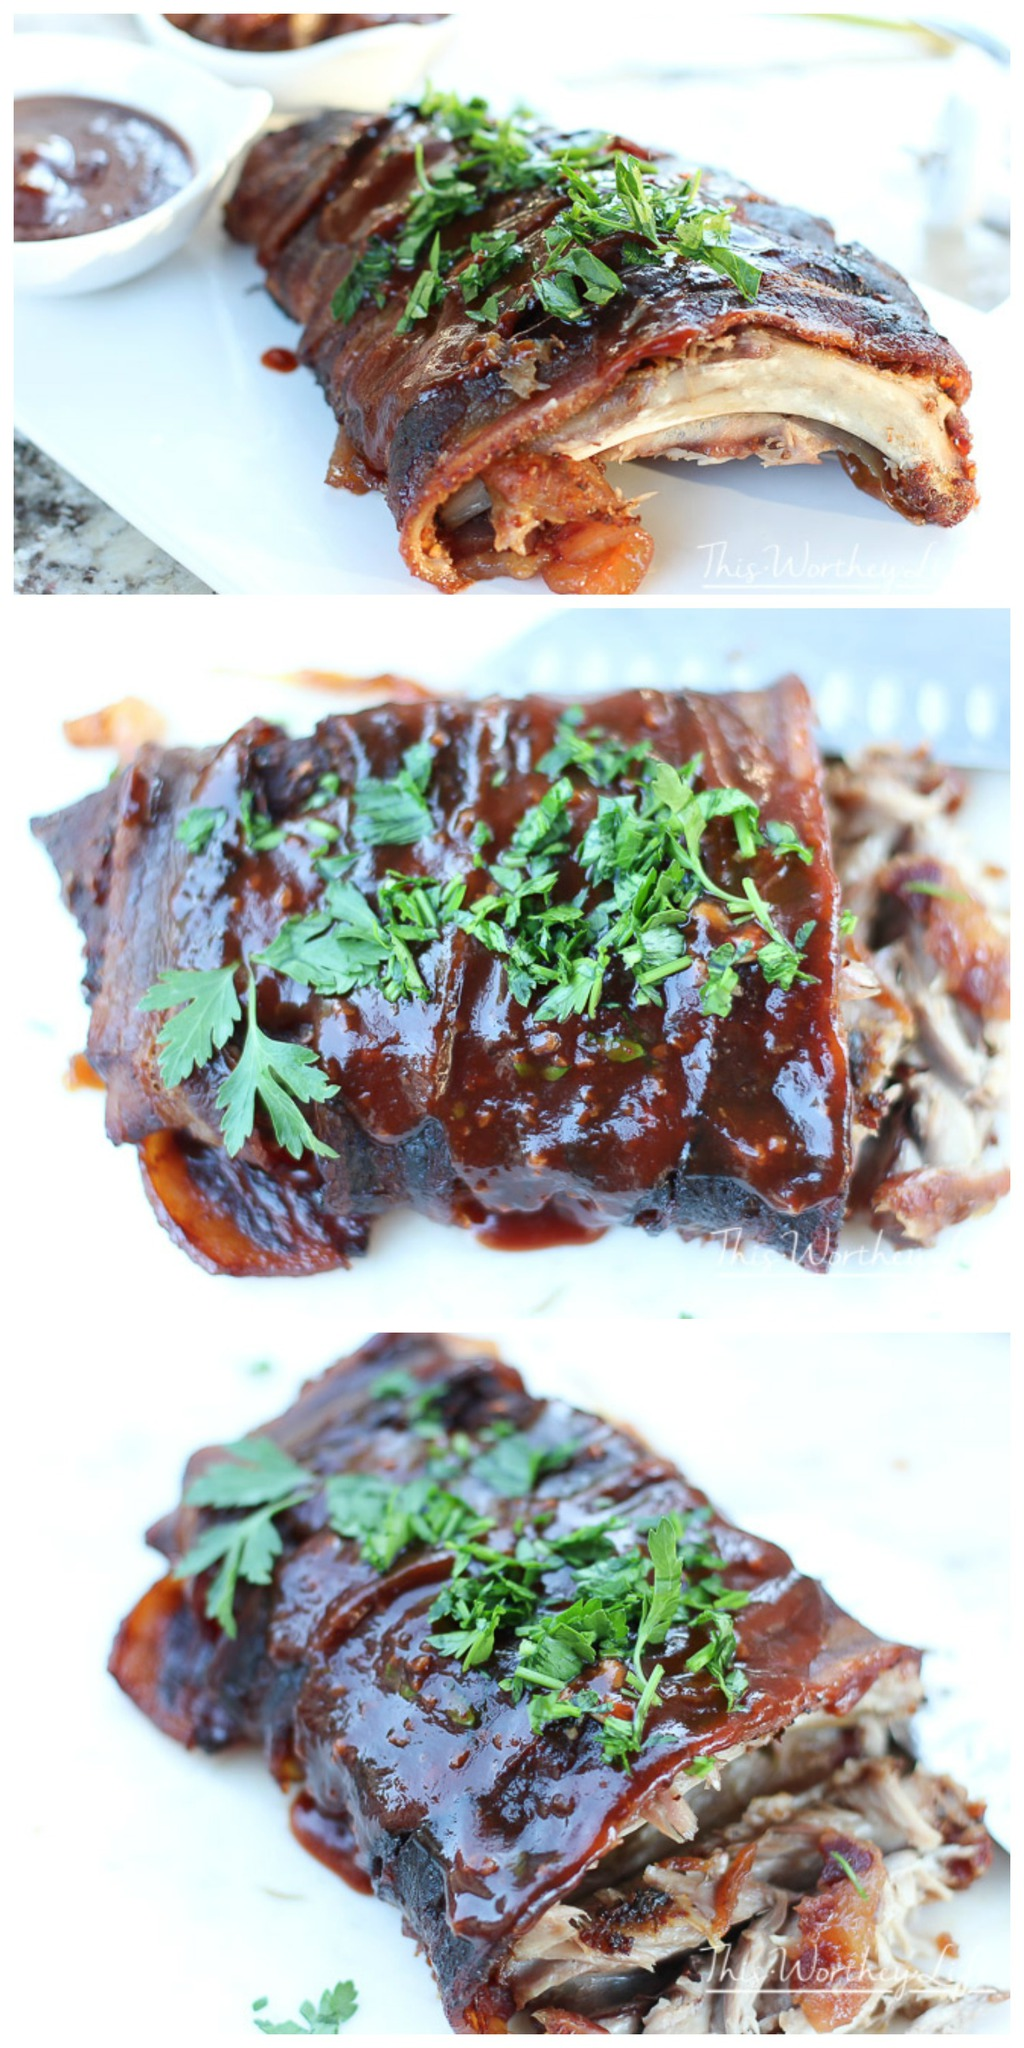 Get your grill on with this rib recipe! If you want falling off the bone ribs, then I'm sharing tips on how to make the best ribs! Plus with bacon! Get the recipe on the blog for Bacon Wrapped Baby Back Ribs Grilling Recipe